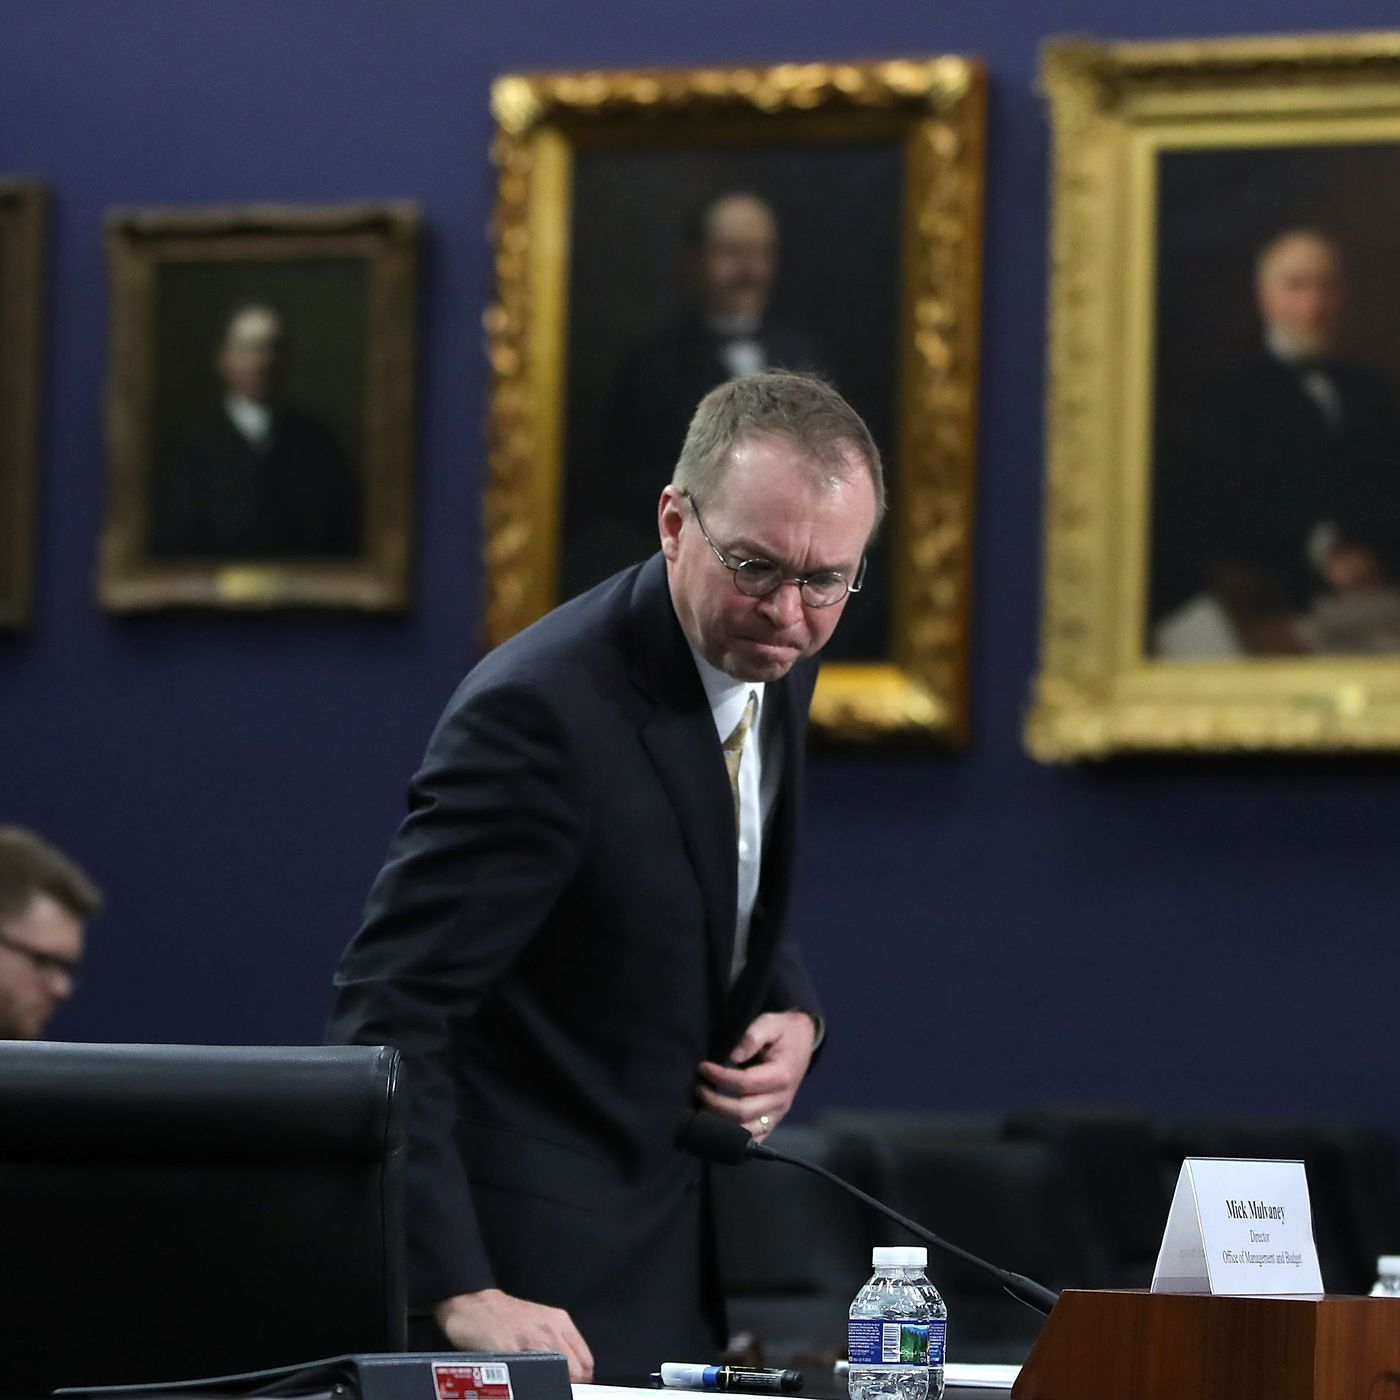 vox.com - Emily Stewart - Mick Mulvaney says in Congress, he only talked to lobbyists who gave him money